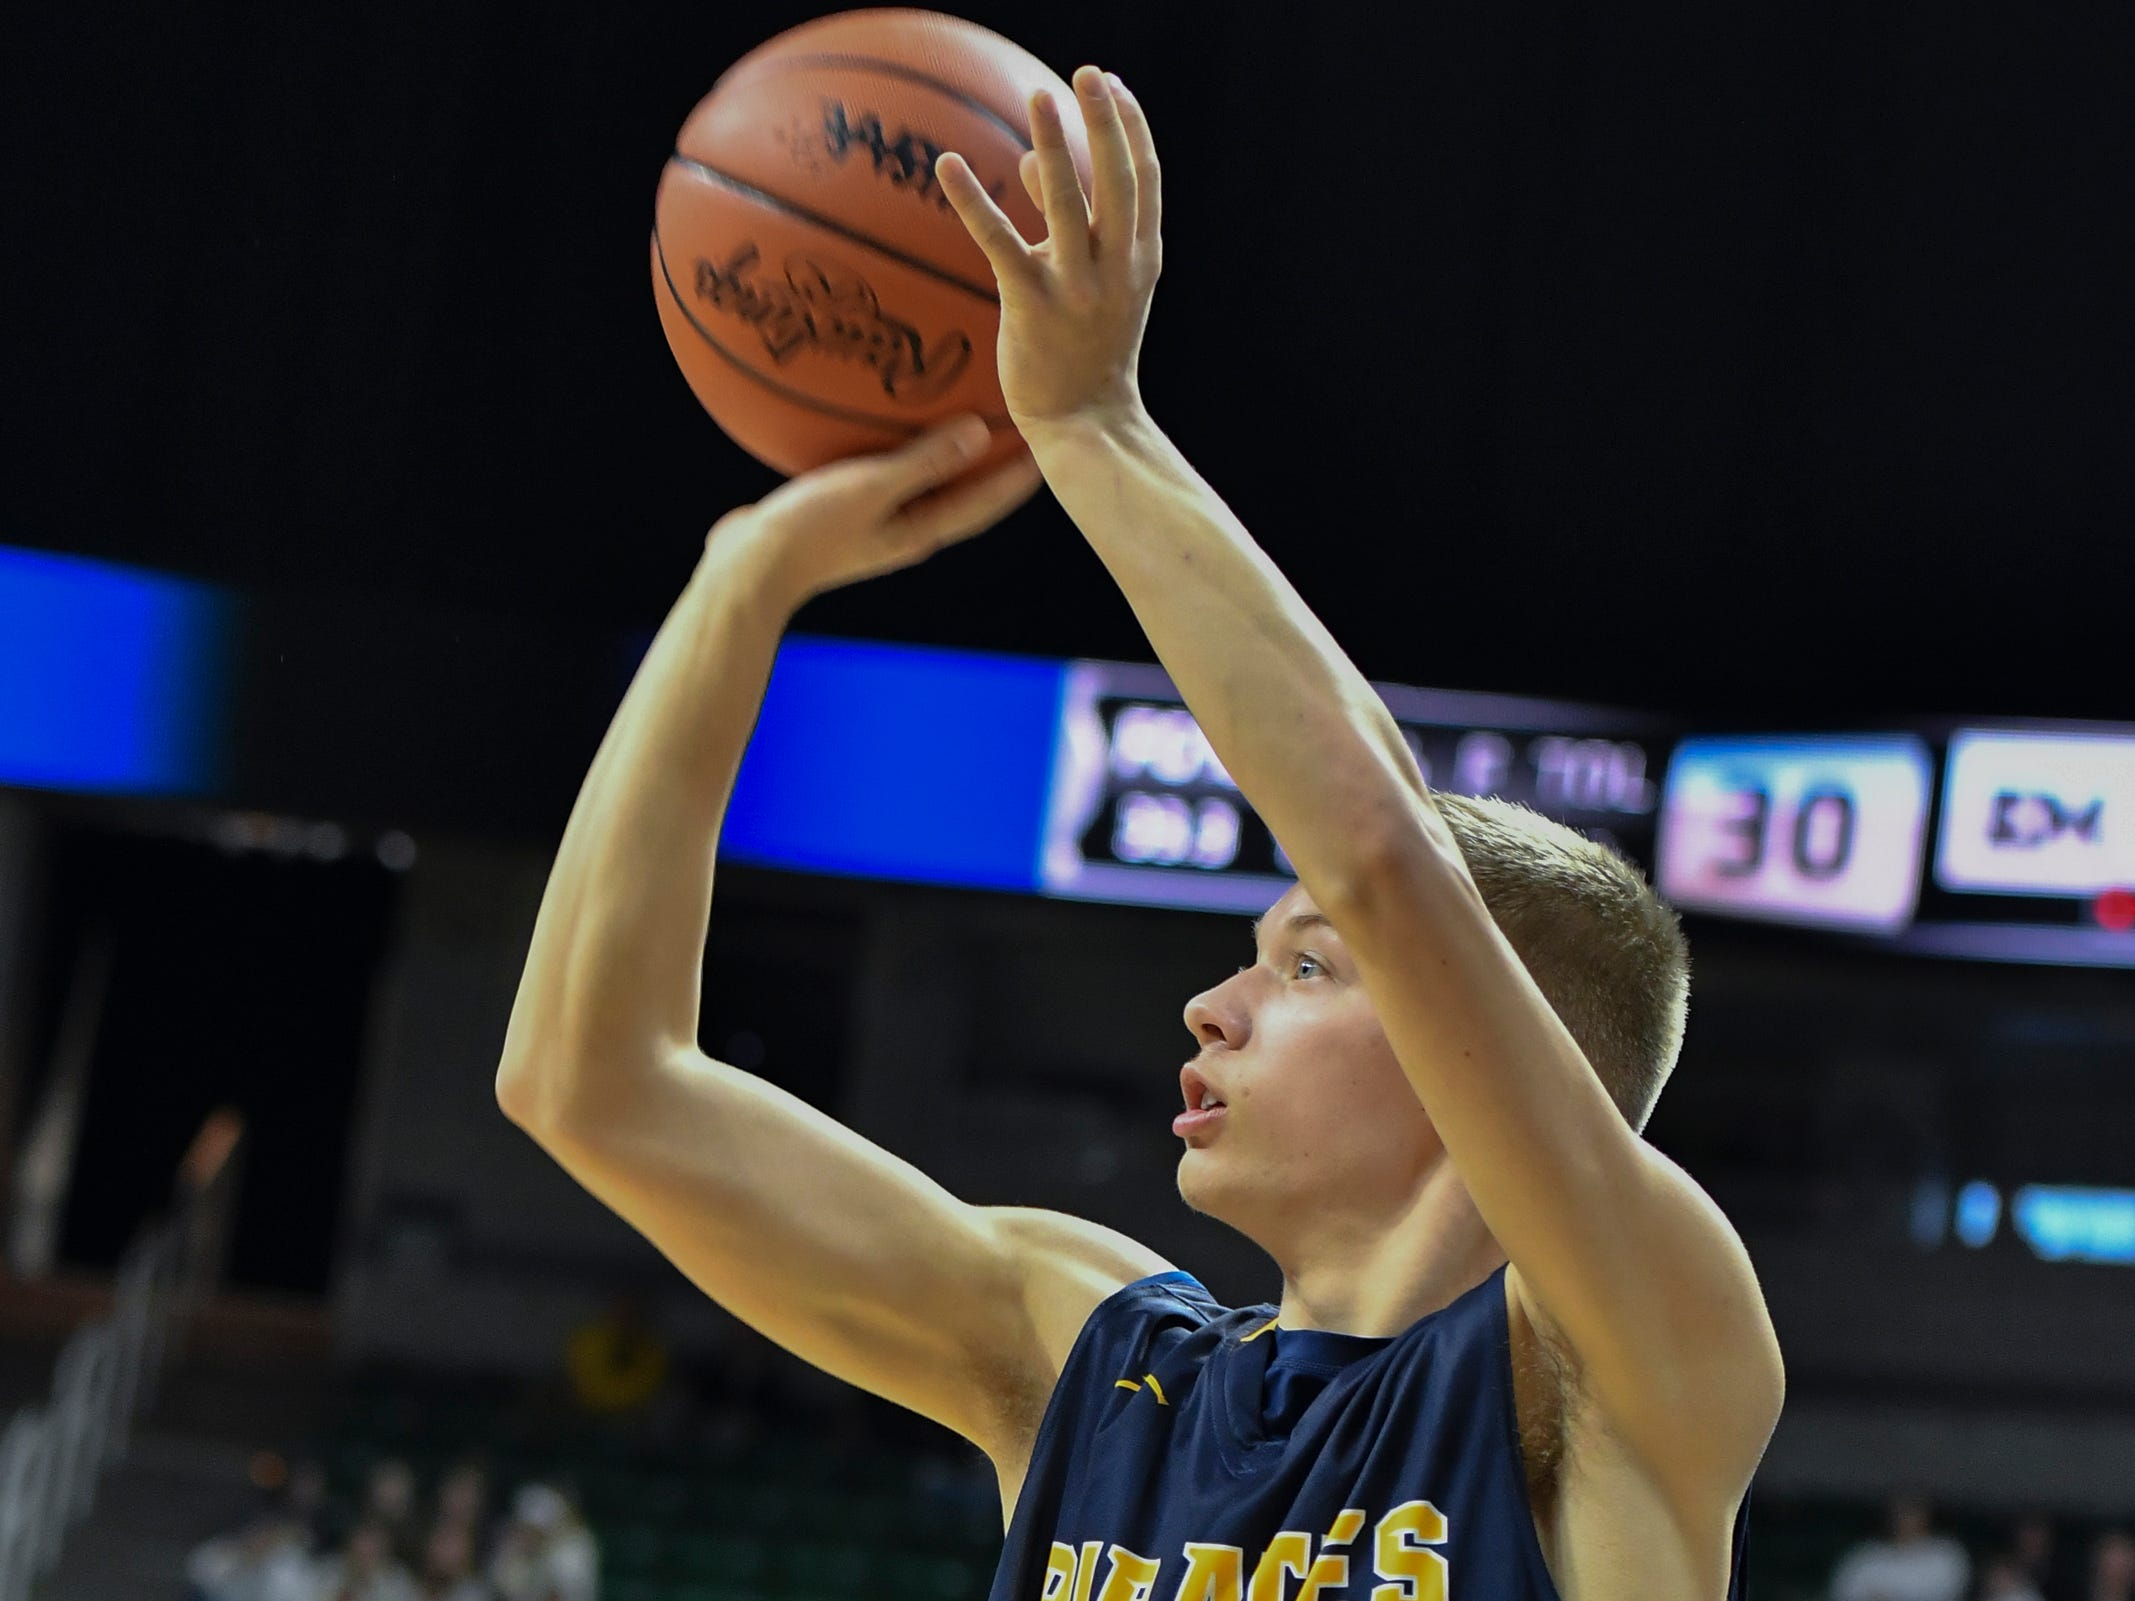 Kyle Stump of P-W connects from three point land against Erie-Mason, Thursday, March 14, 2019, during the MHSAA Div. 3 state semifinal at the Breslin Center in East Lansing.   P-W earned a berth in the state final winning 60-45.